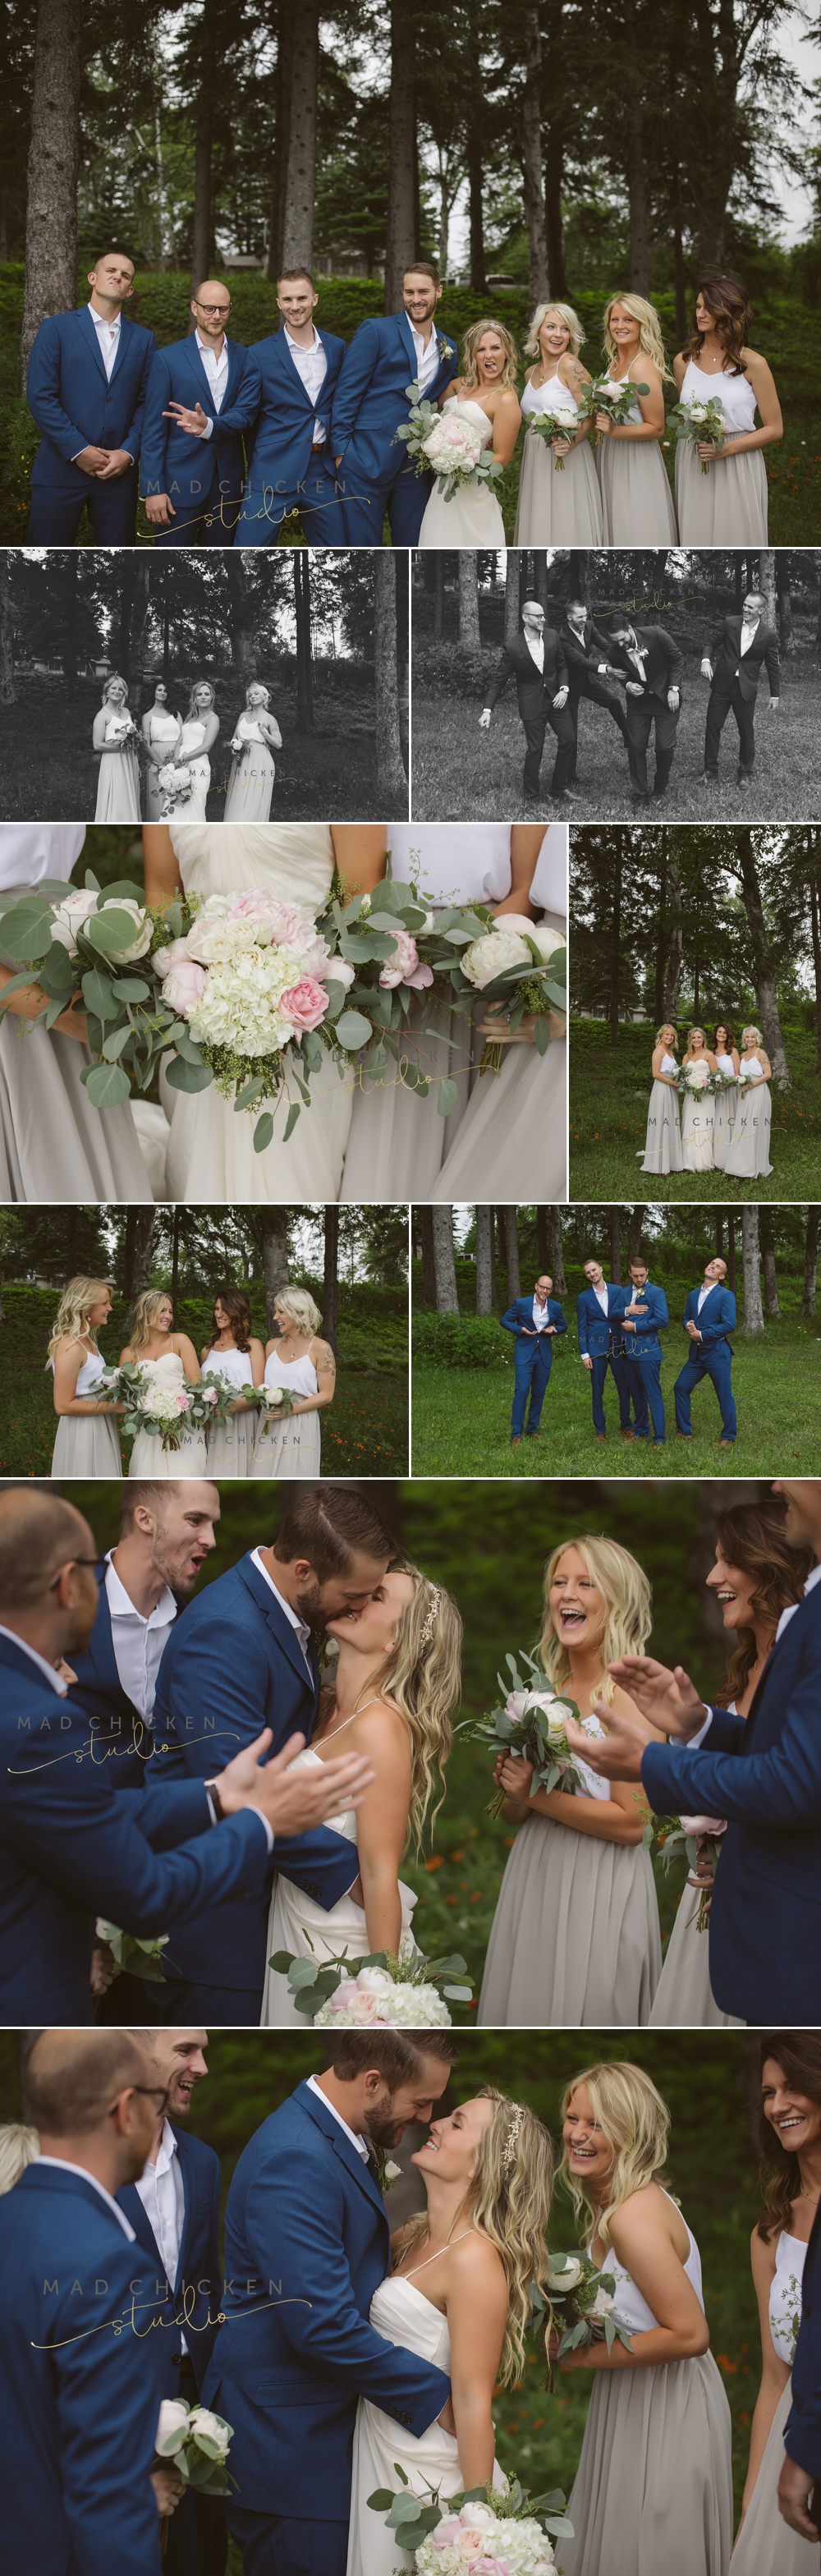 wedding party at Tofte Park